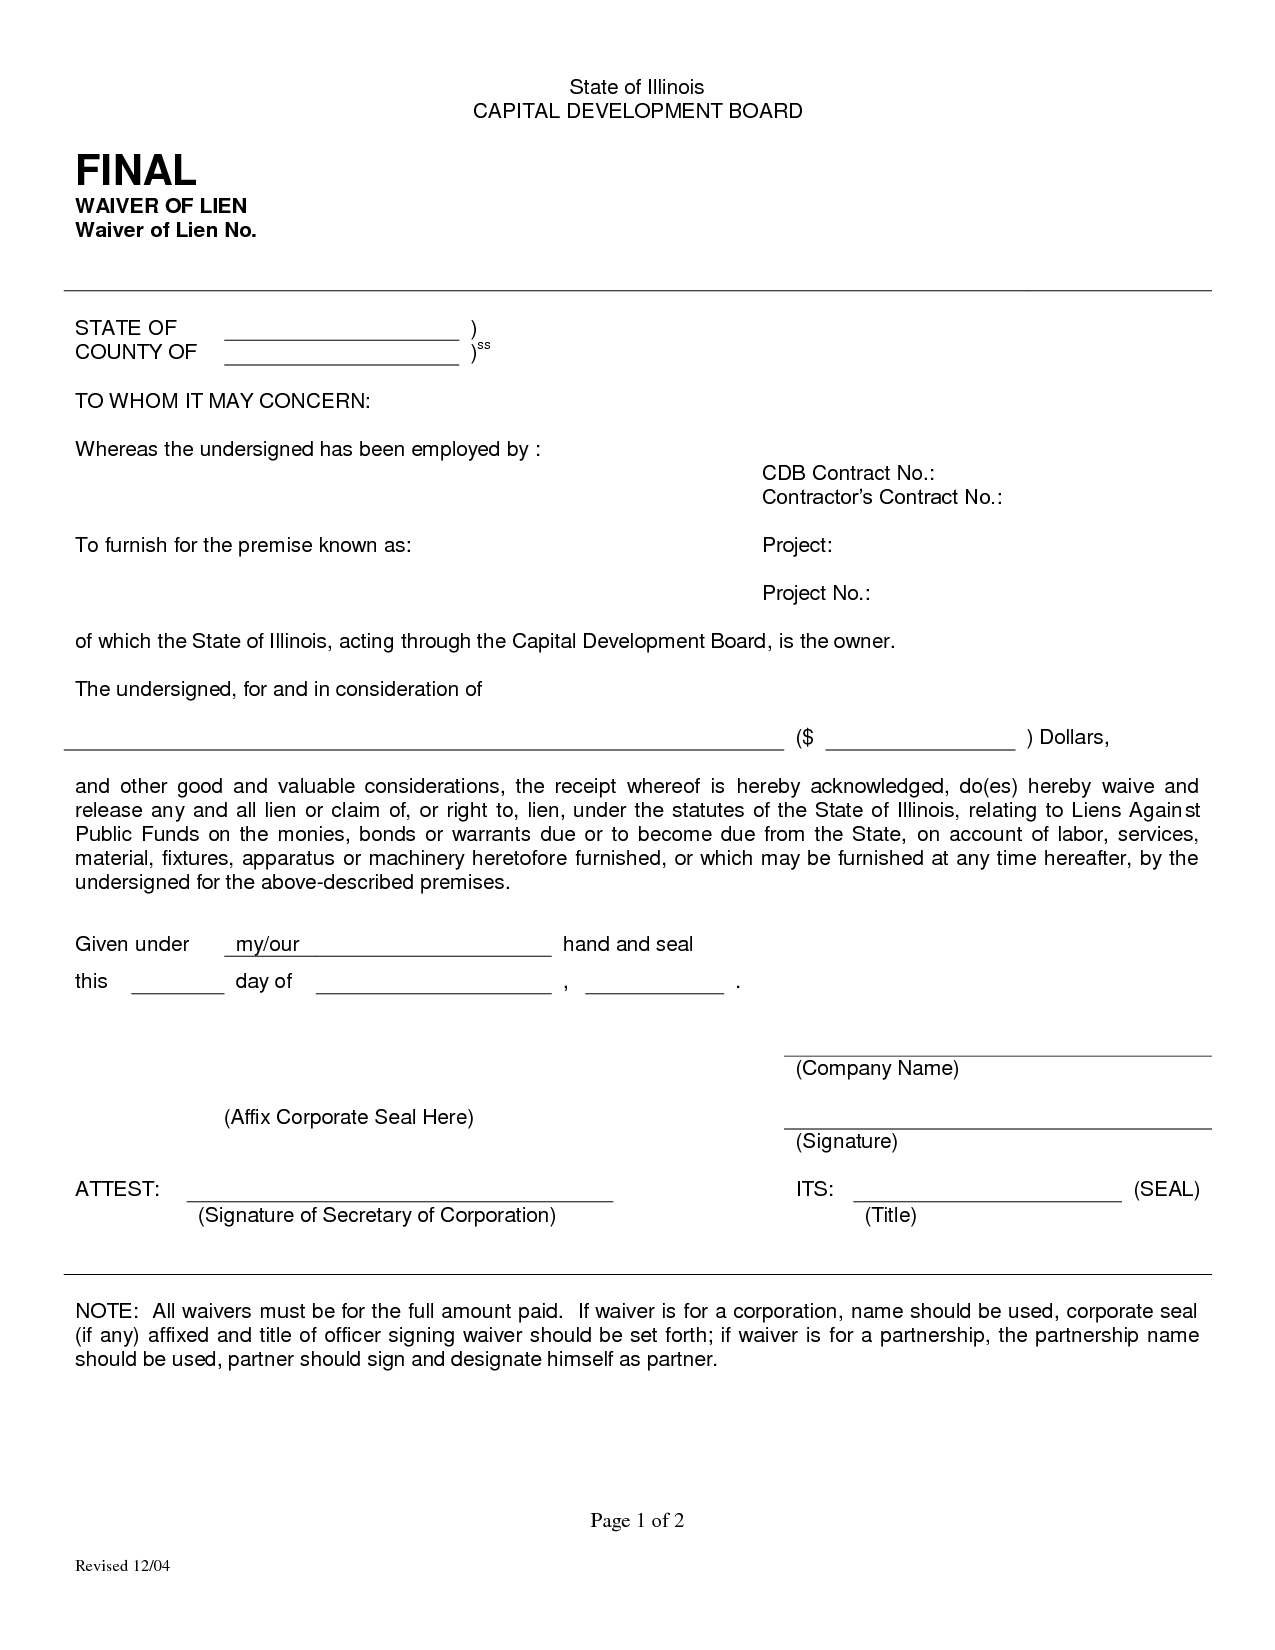 Waiver Of Liability Form Sample  SwifterCo  Sample Waiver